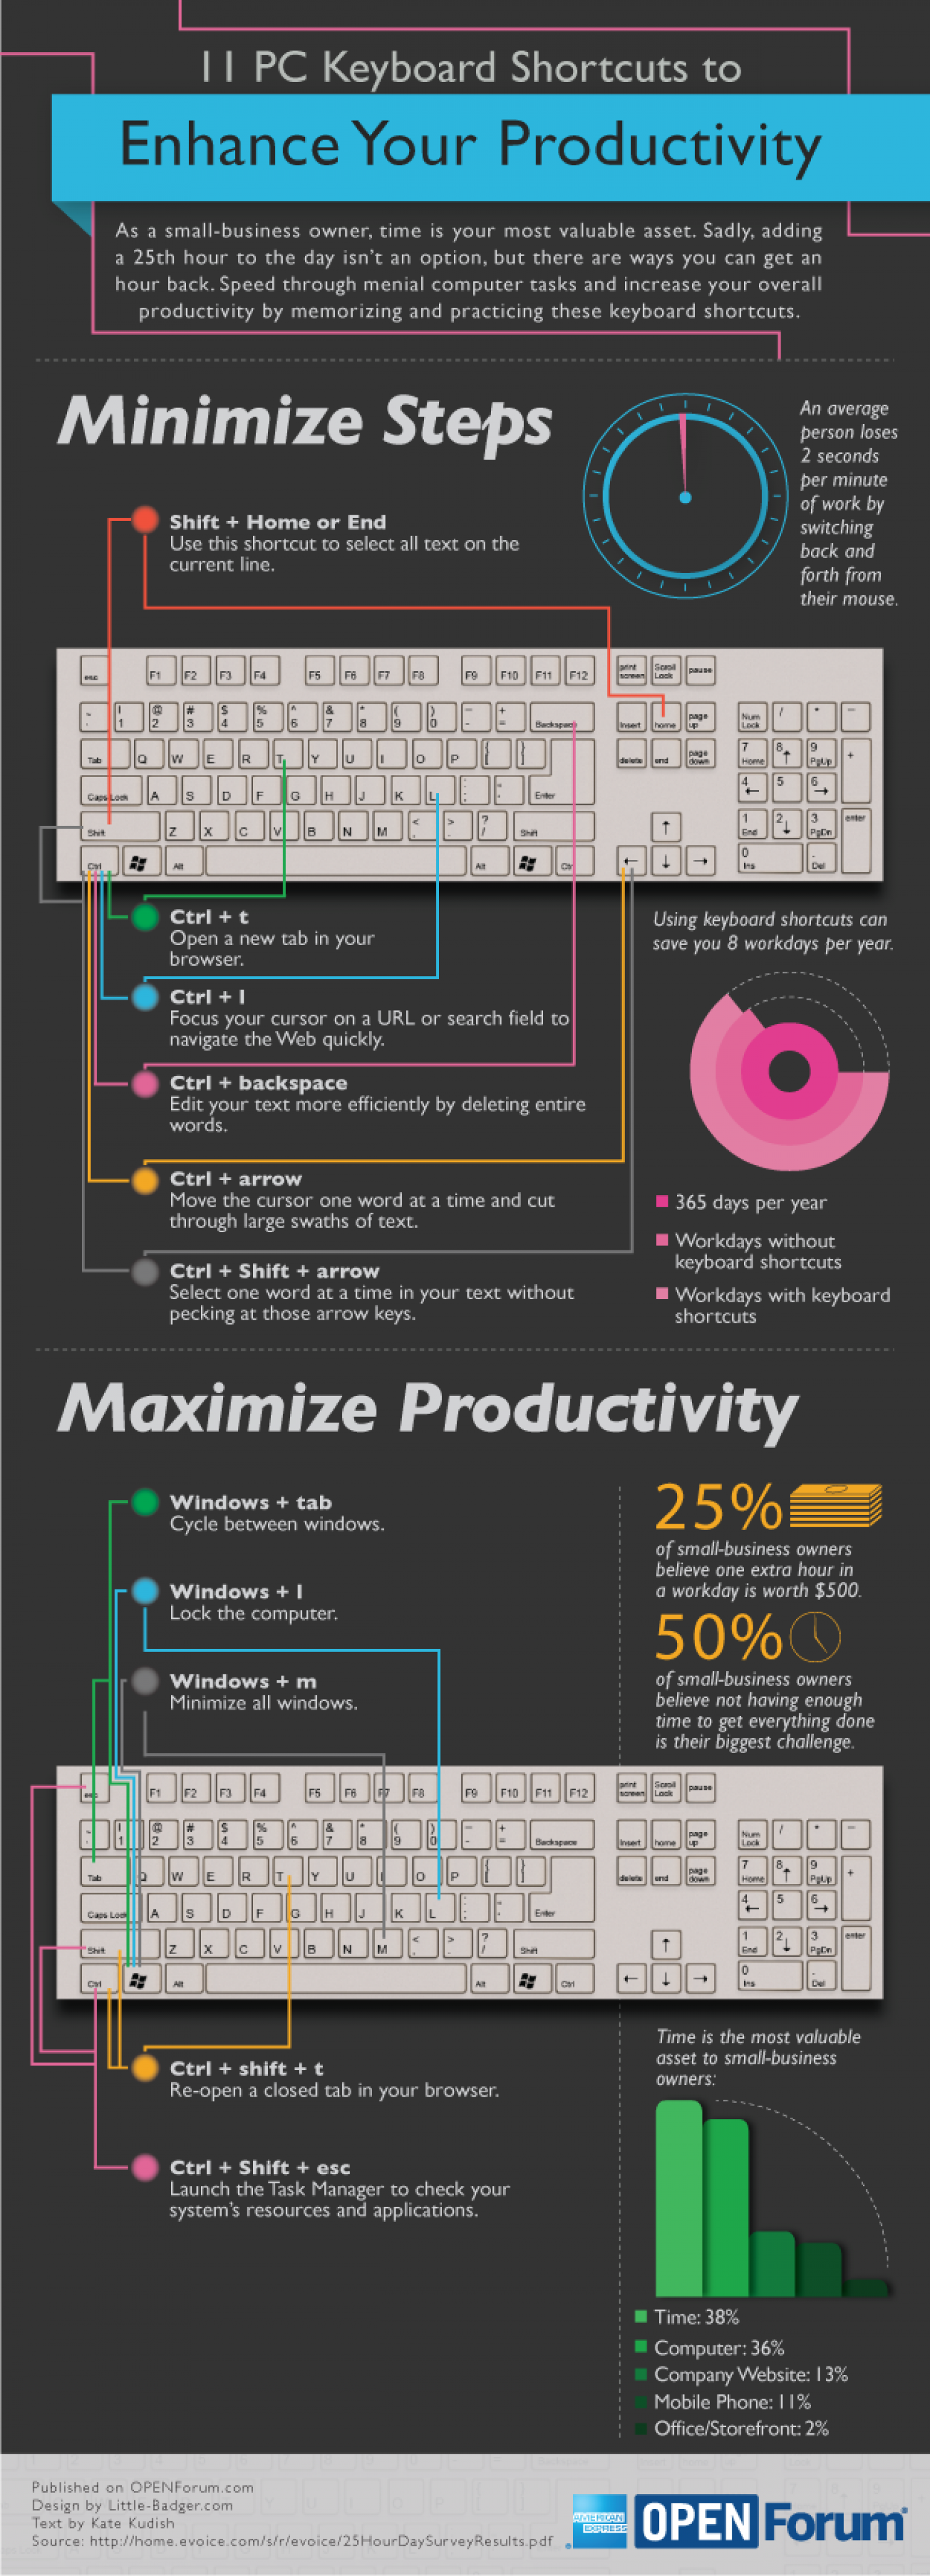 11 PC Keyboard Shortcuts to Enhance Your Productivity Infographic